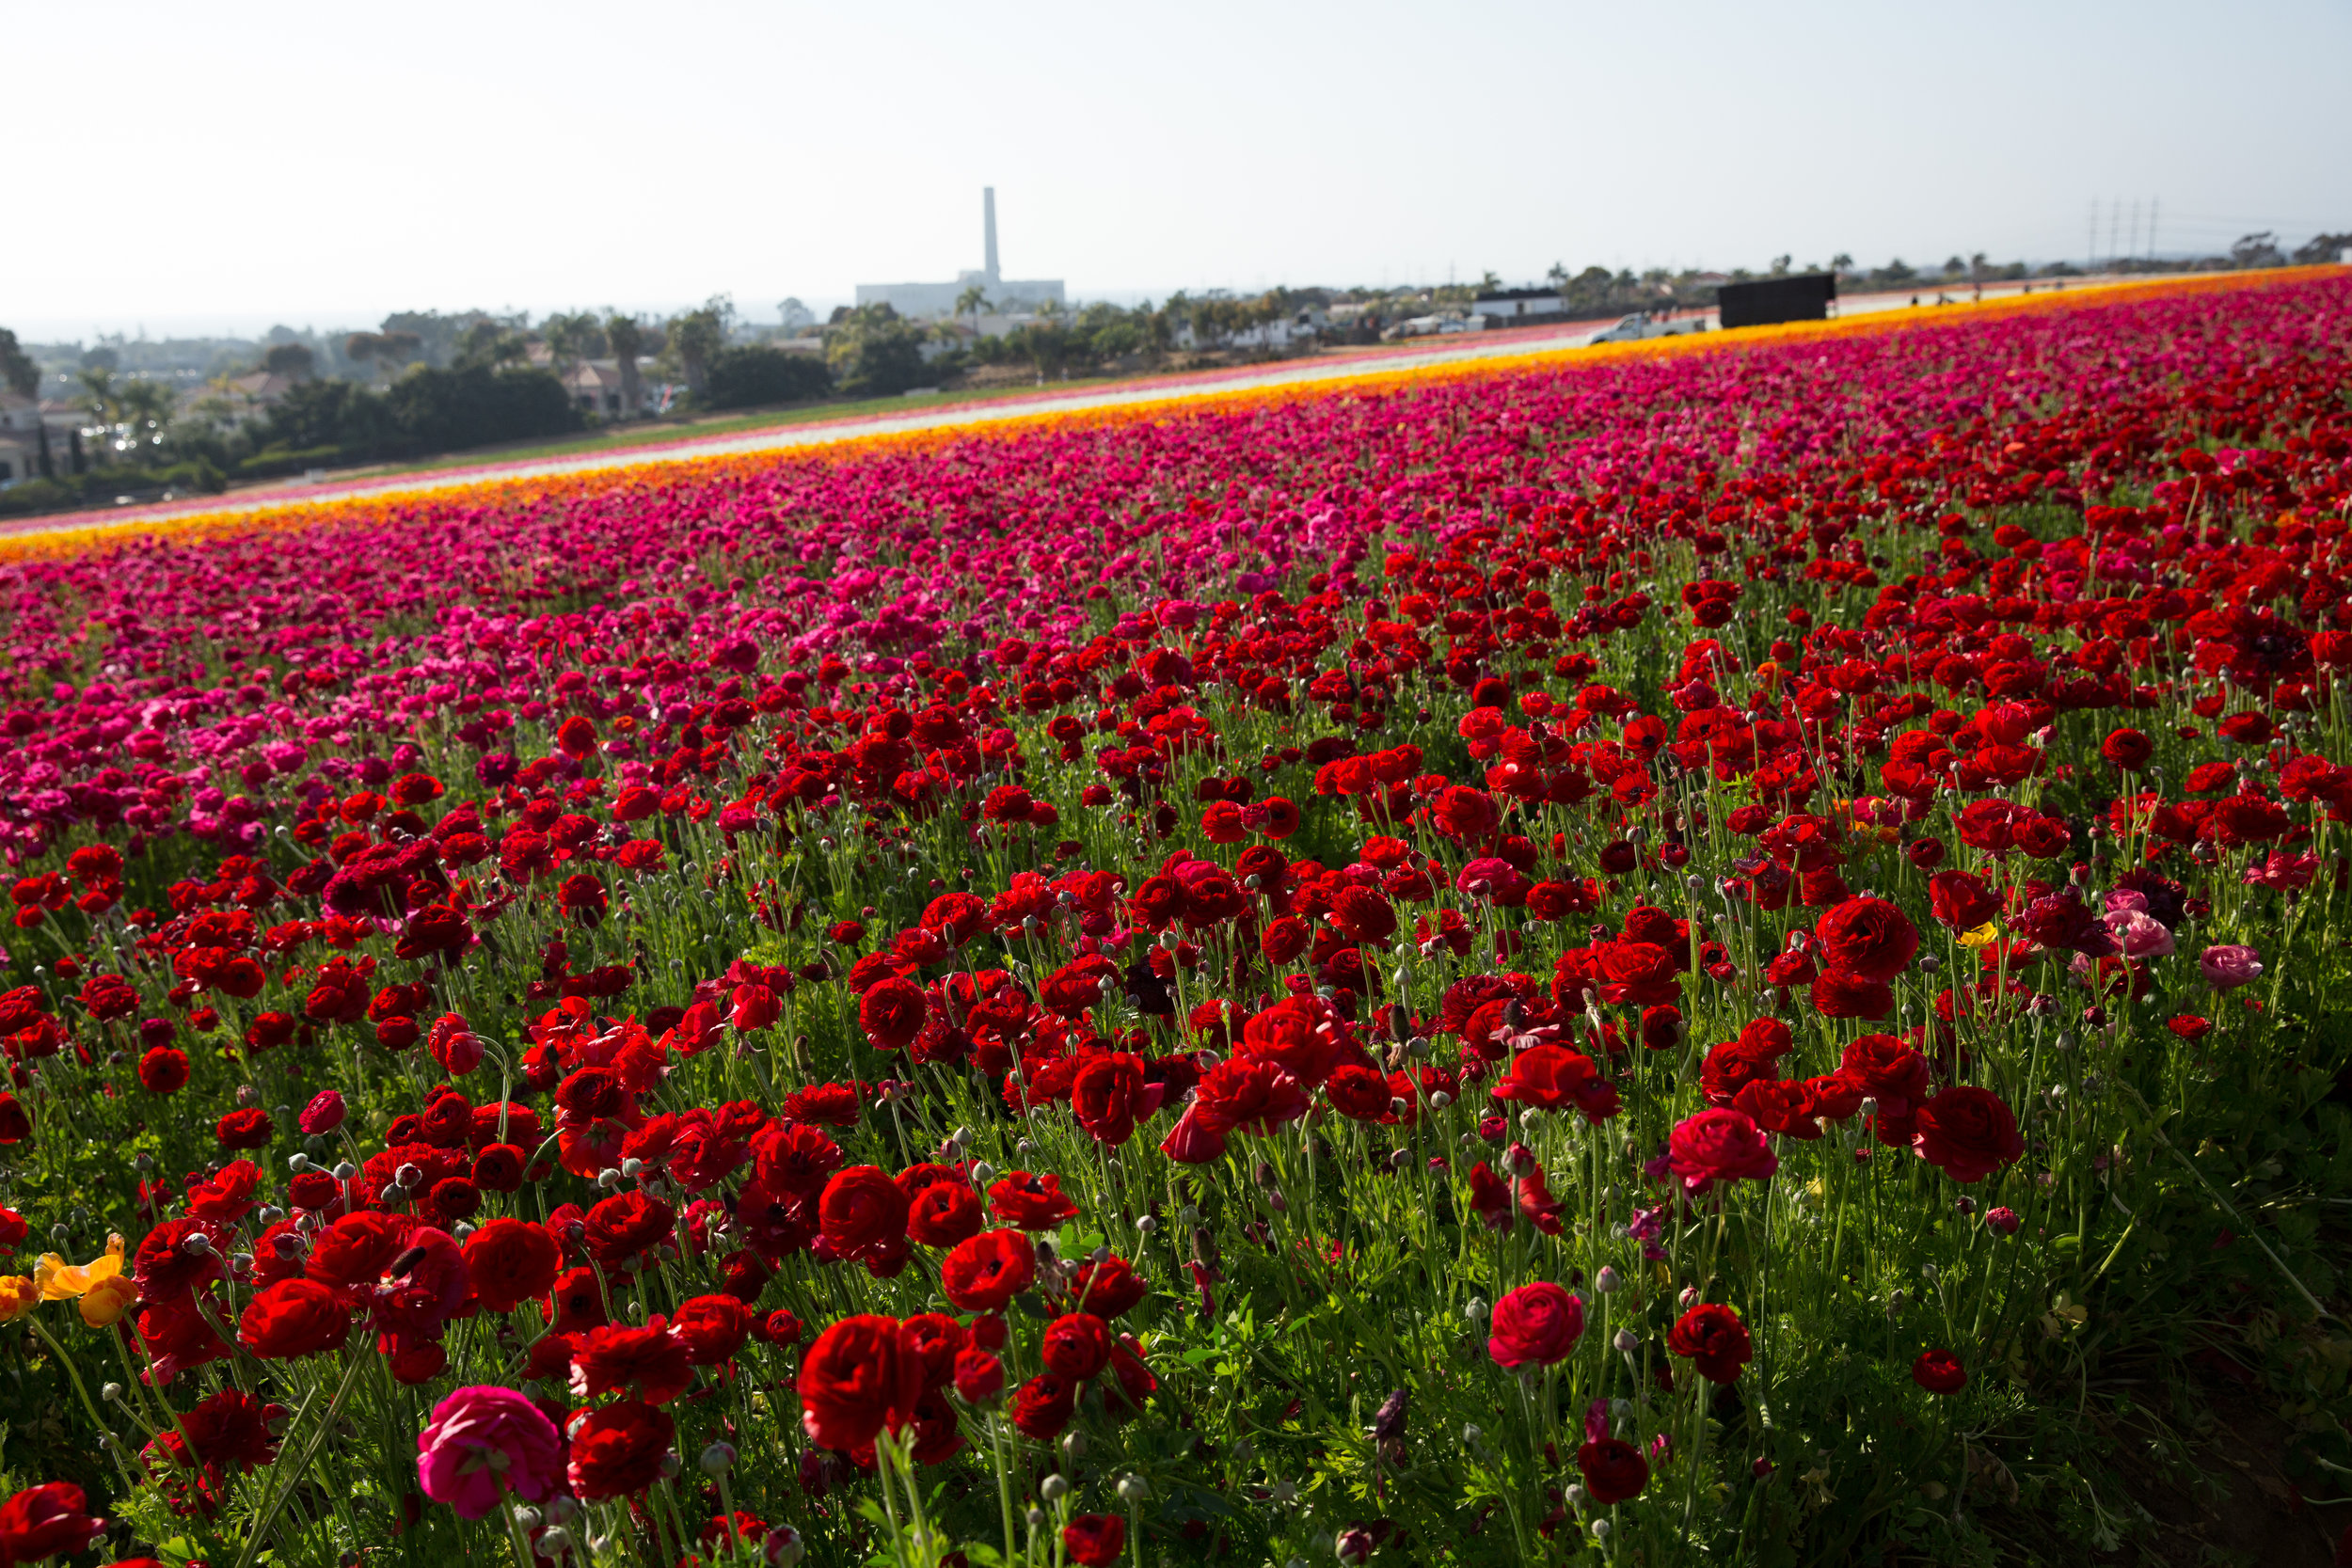 FLOWER_FIELDS-60.jpg